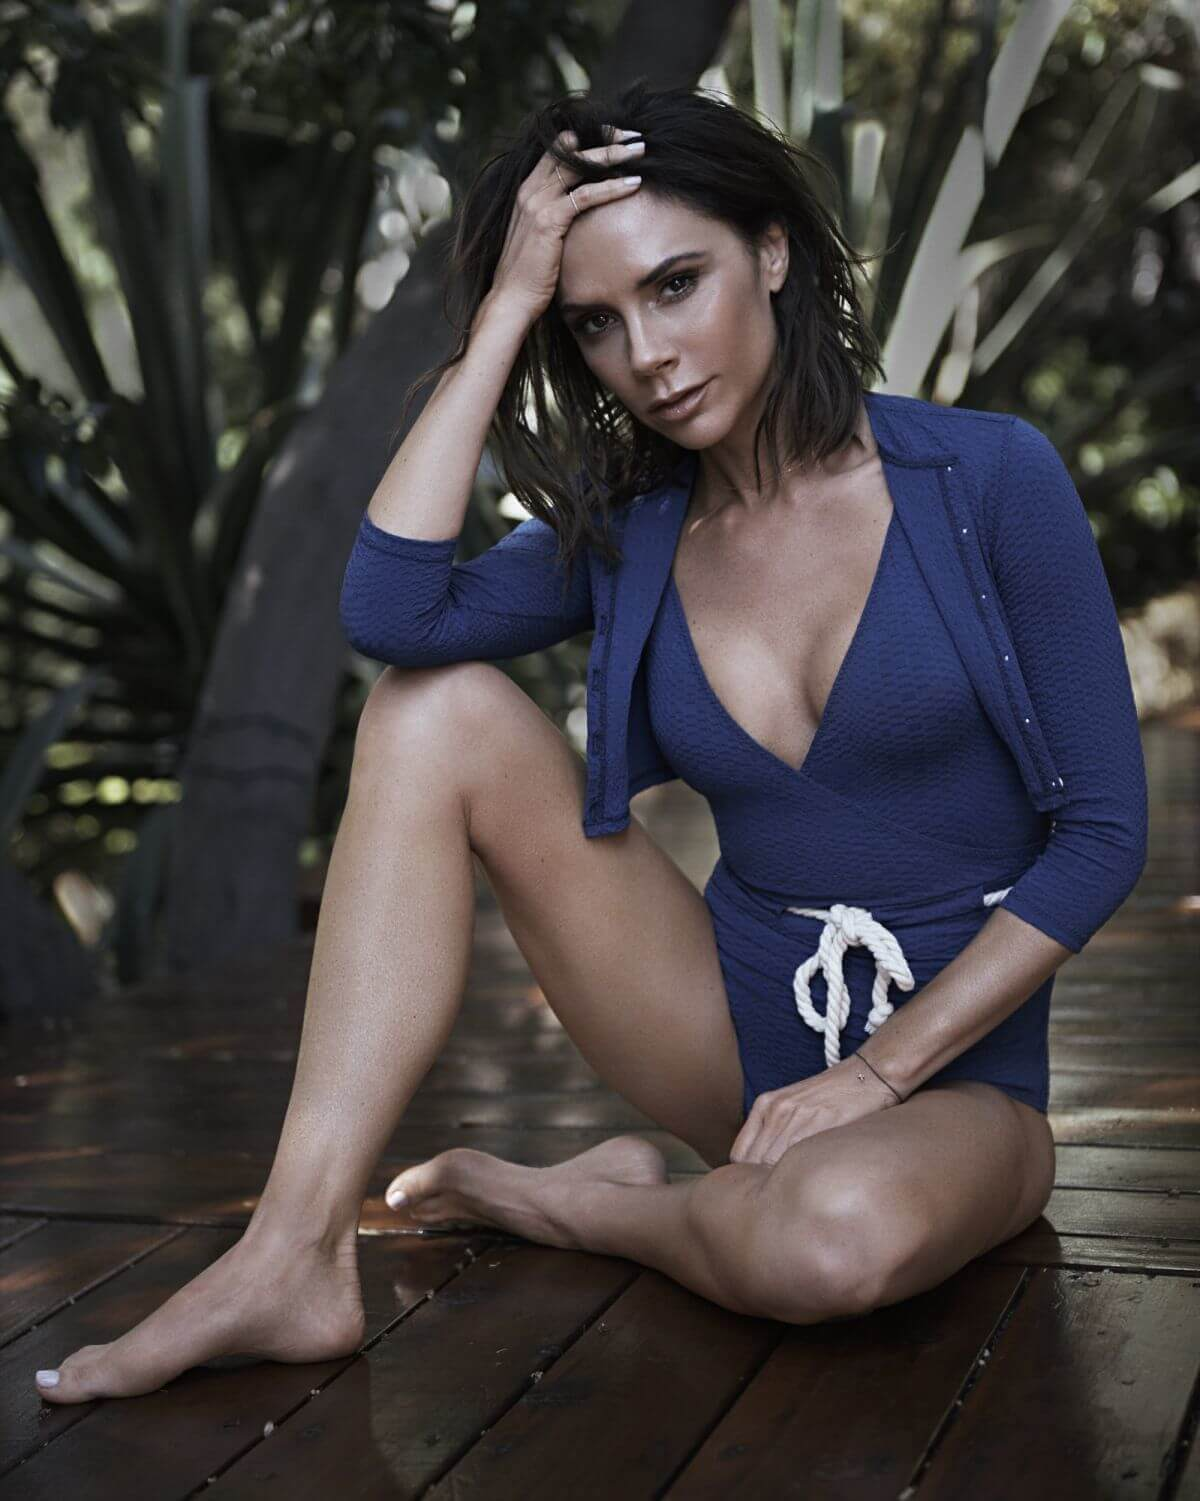 victoria-beckham-awesome-photo-1